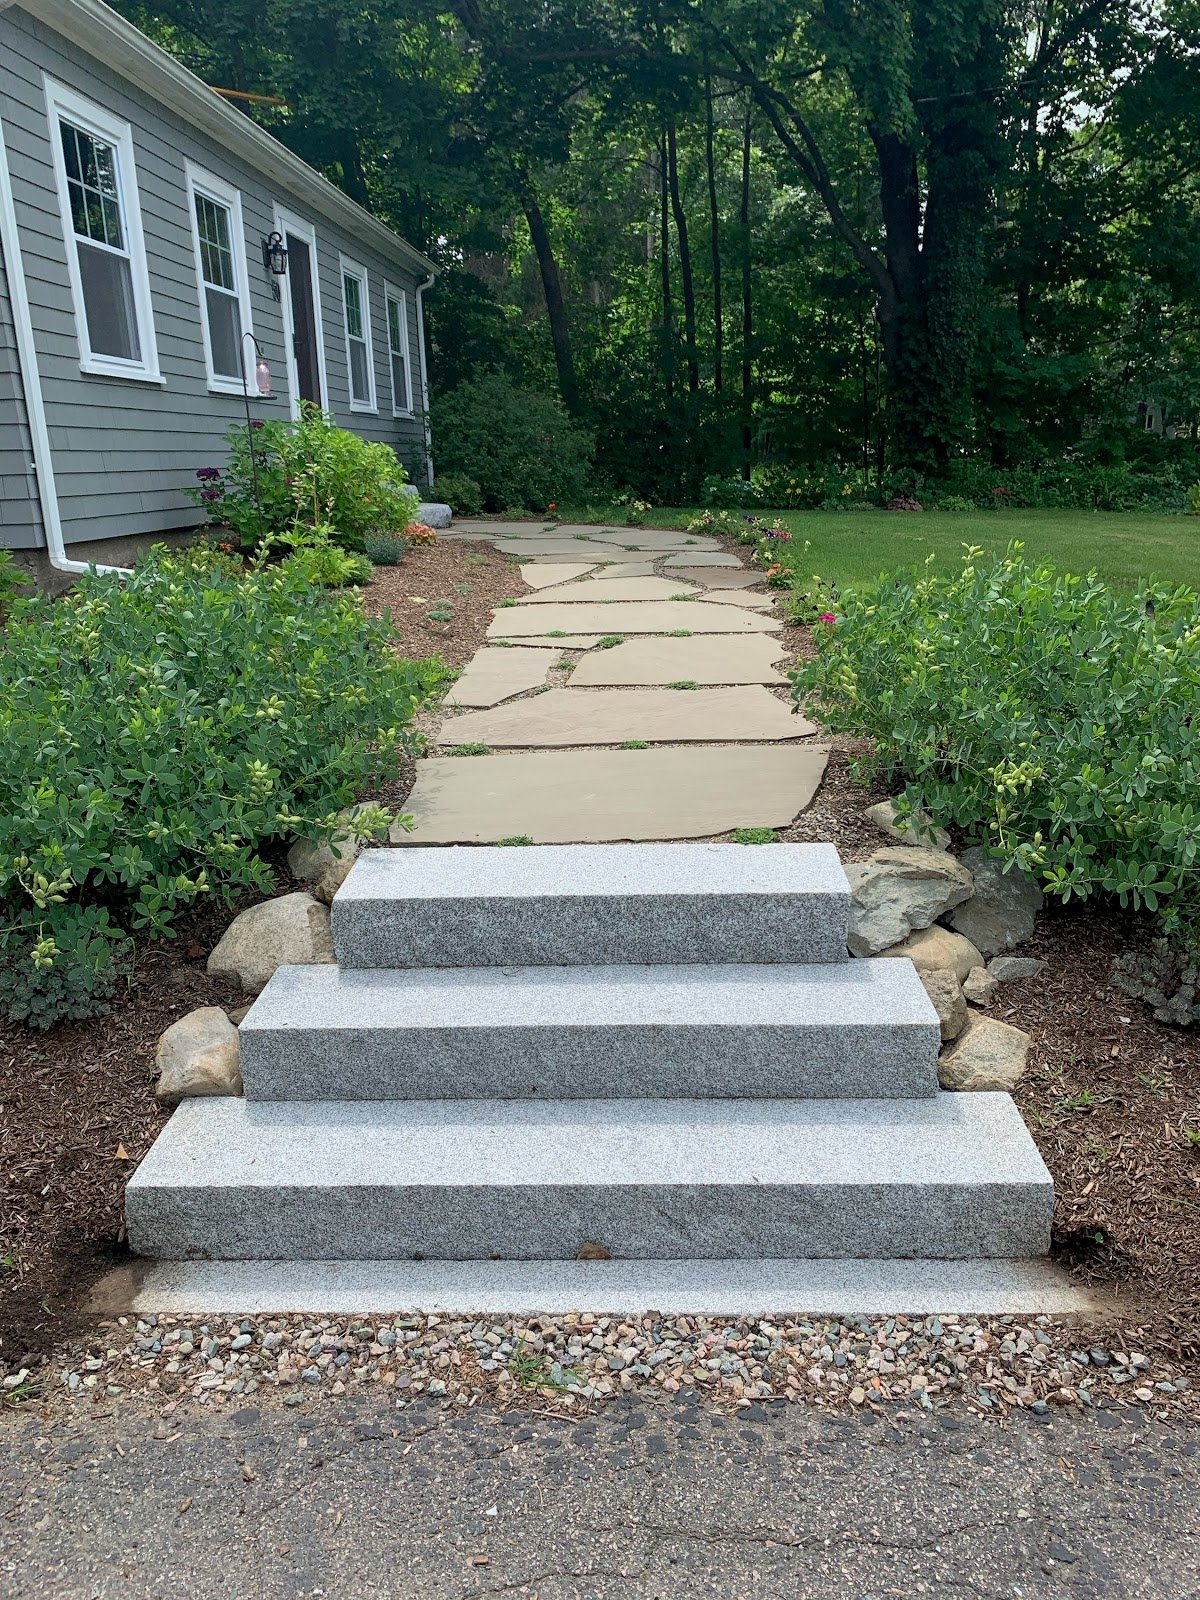 Before and After: Natural Path Landscaping steps project with granite from Swenson Granite Works